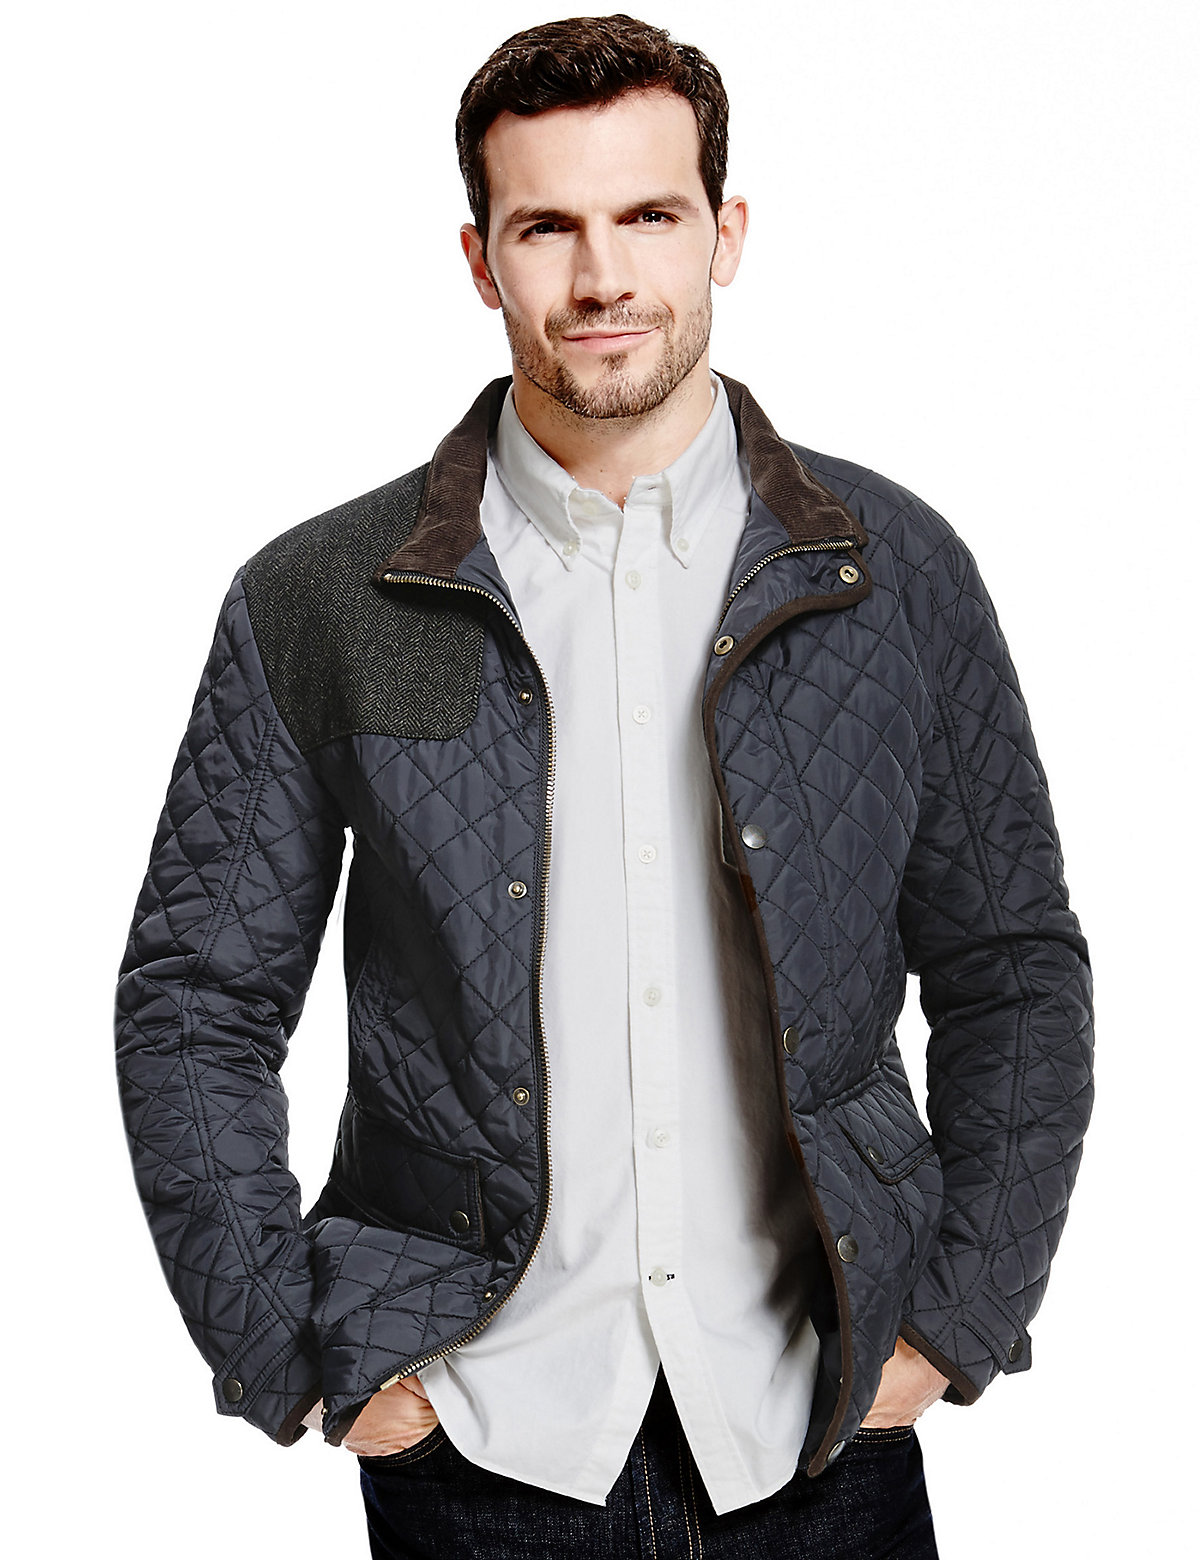 Blue Harbour Slim Fit Water Resistant Quilted Jacket with Stormwear | Coat, Jacket and Clothing